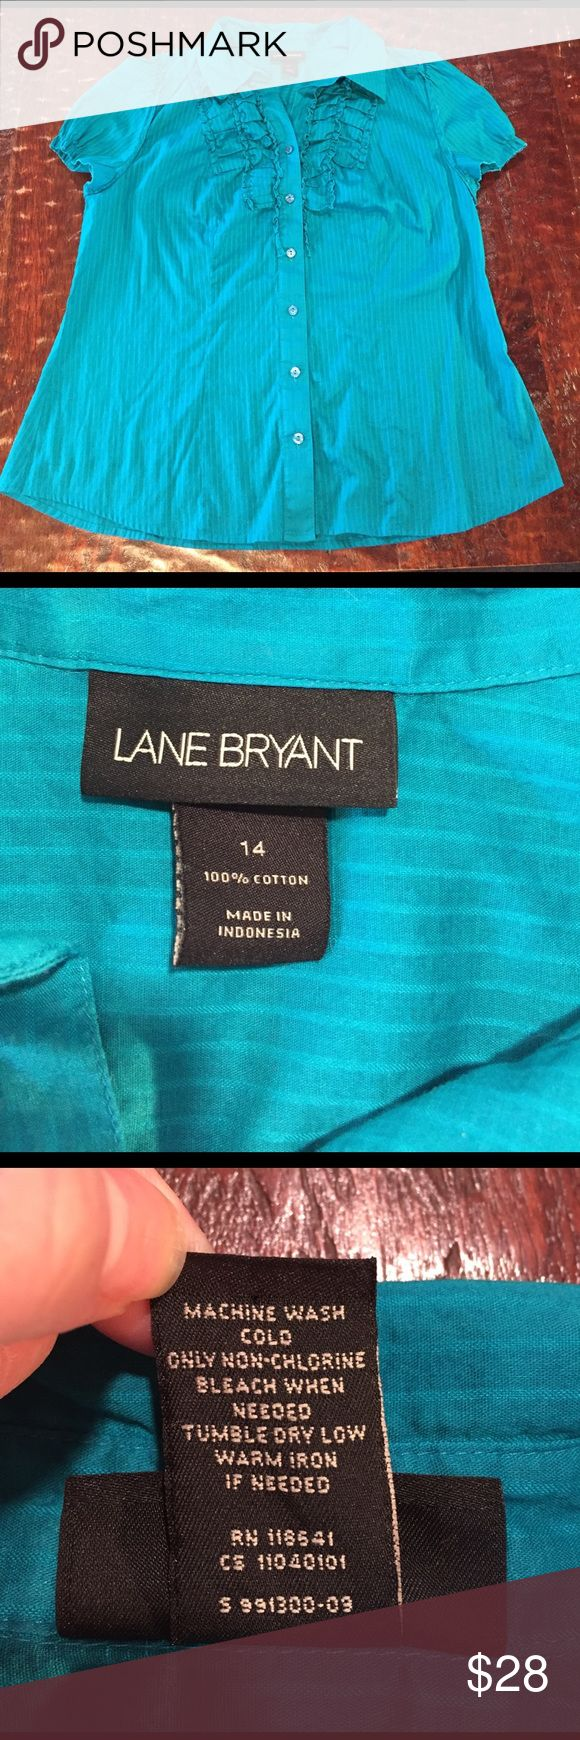 """Lane Bryant Cap Sleeve Blouse Lane Bryant Cap Sleeve Blouse Size 14. Blouse is 25"""" from shoulder to hem. Bust measures 20"""" laying flat. Blouse is in excellent condition with no signs of wear. Comes from a Smoke Free/Pet Friendly home. Offers always welcome. Lane Bryant Tops Blouses"""